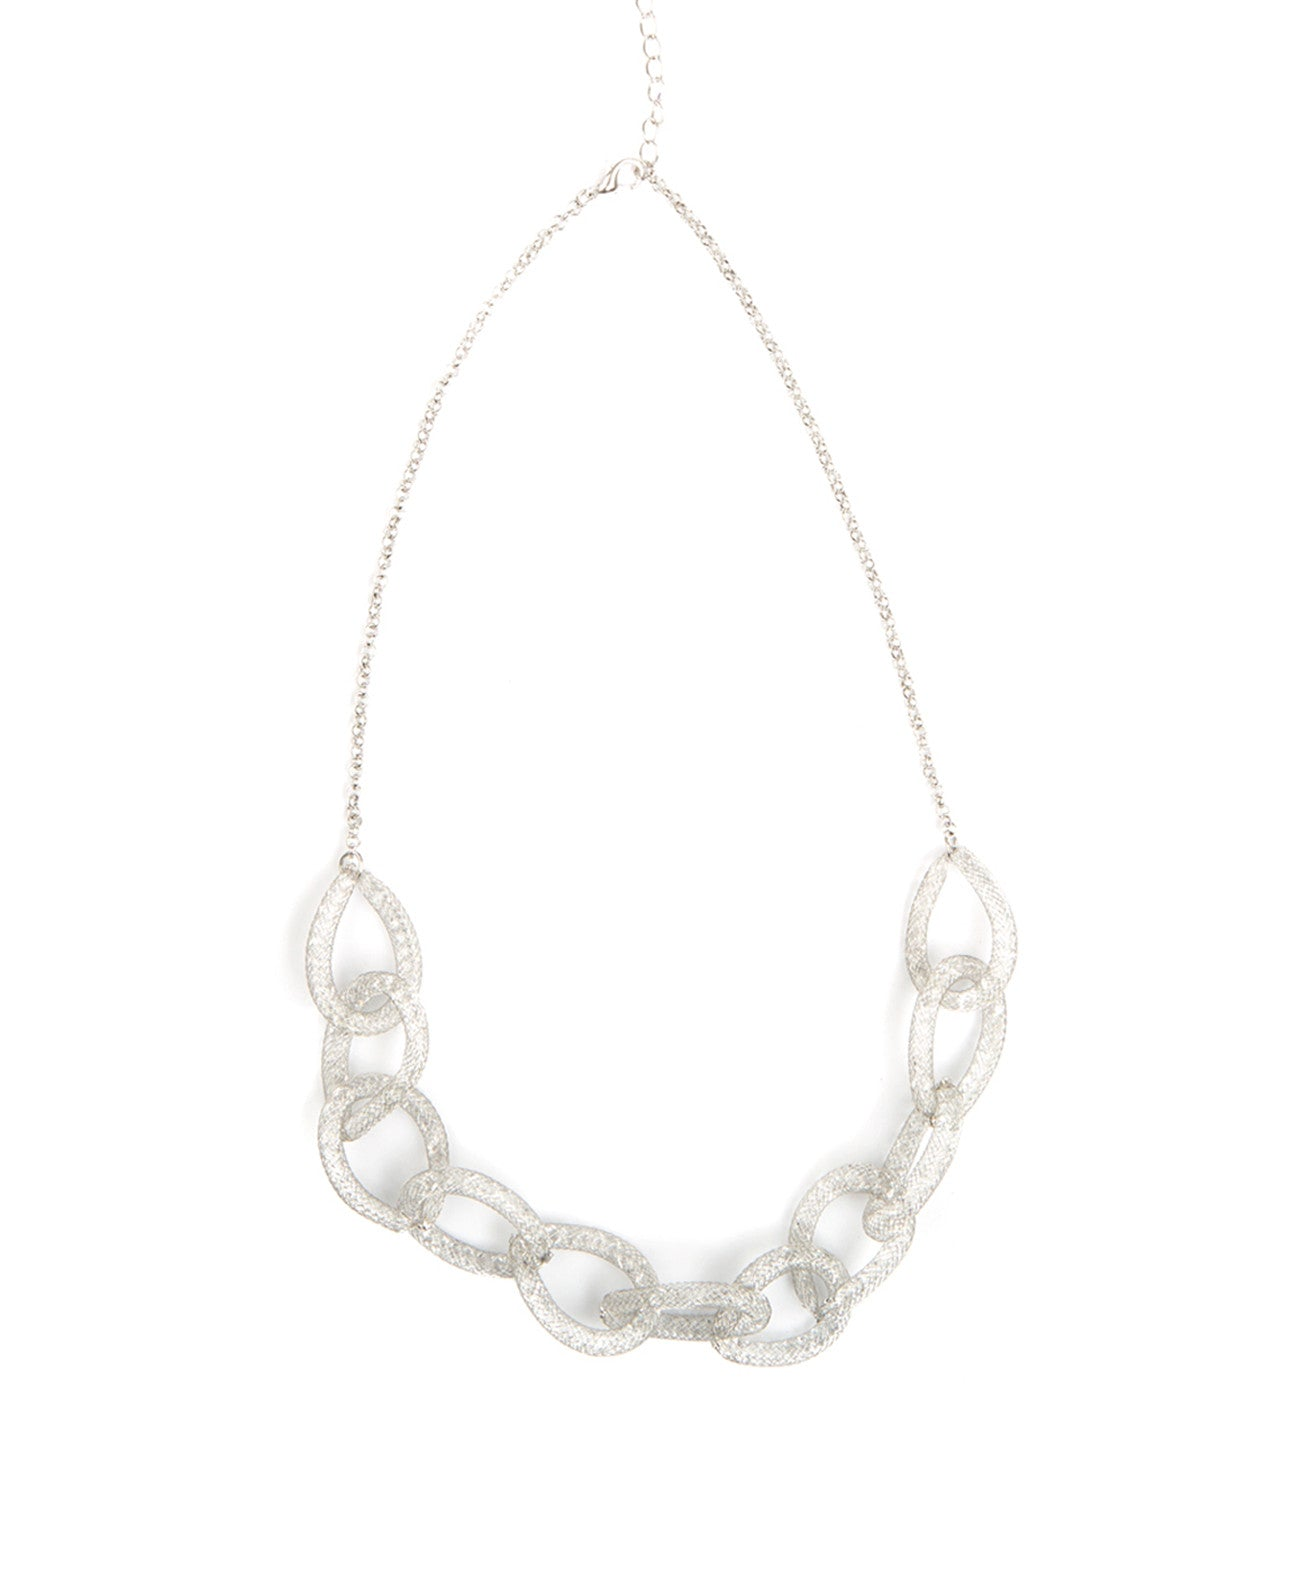 CRYSTAL FILLED CHAIN-LINK NECKLACE - Koko & Palenki